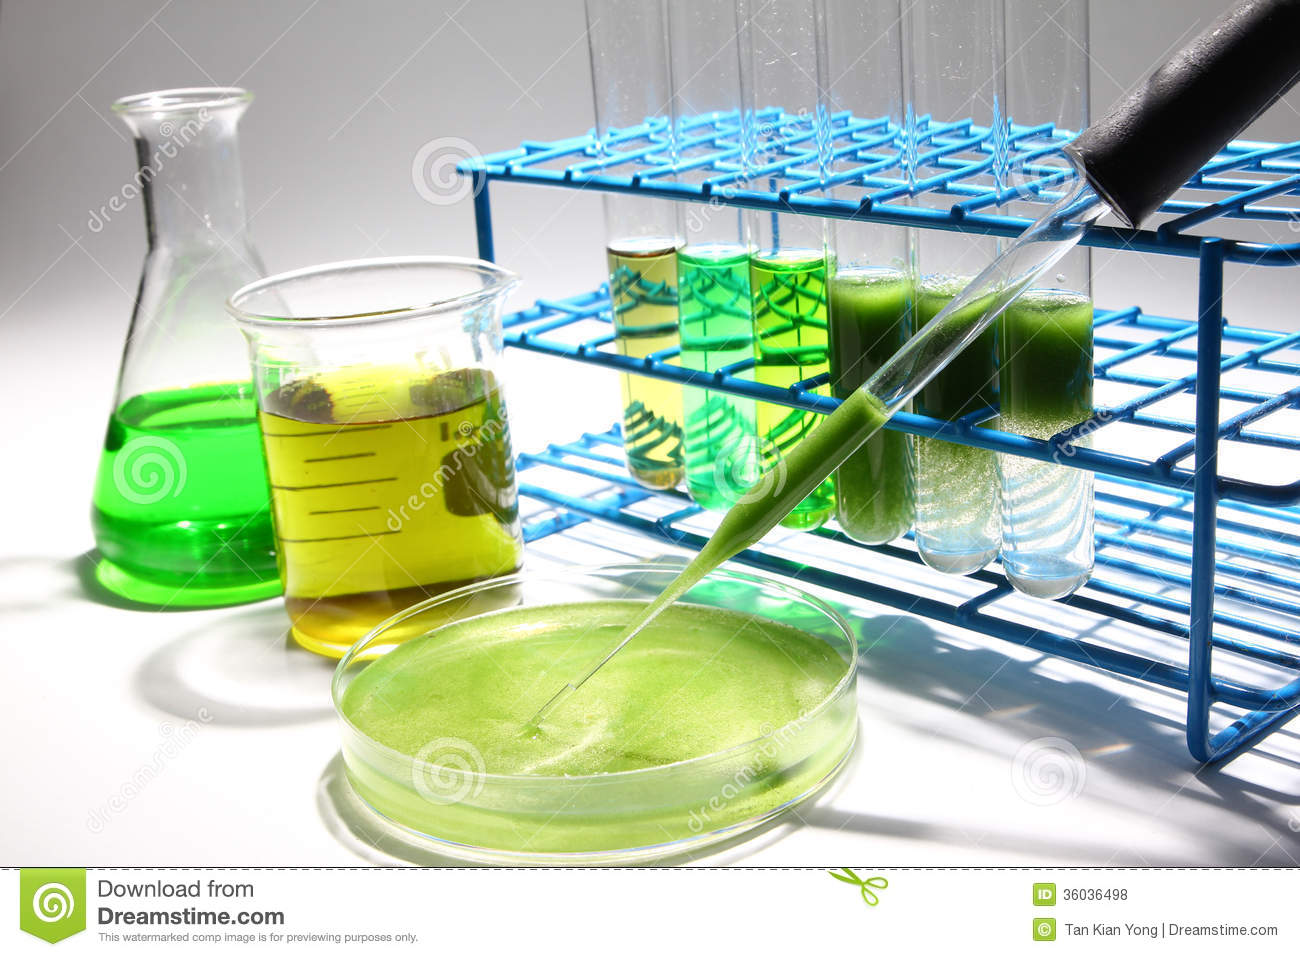 research review paper biodiesel from microalgae Biodiesel from microalgae - massey universityresearch review paper biodiesel from microalgae yusuf chisti⁎ institute of technology and engineering, massey.